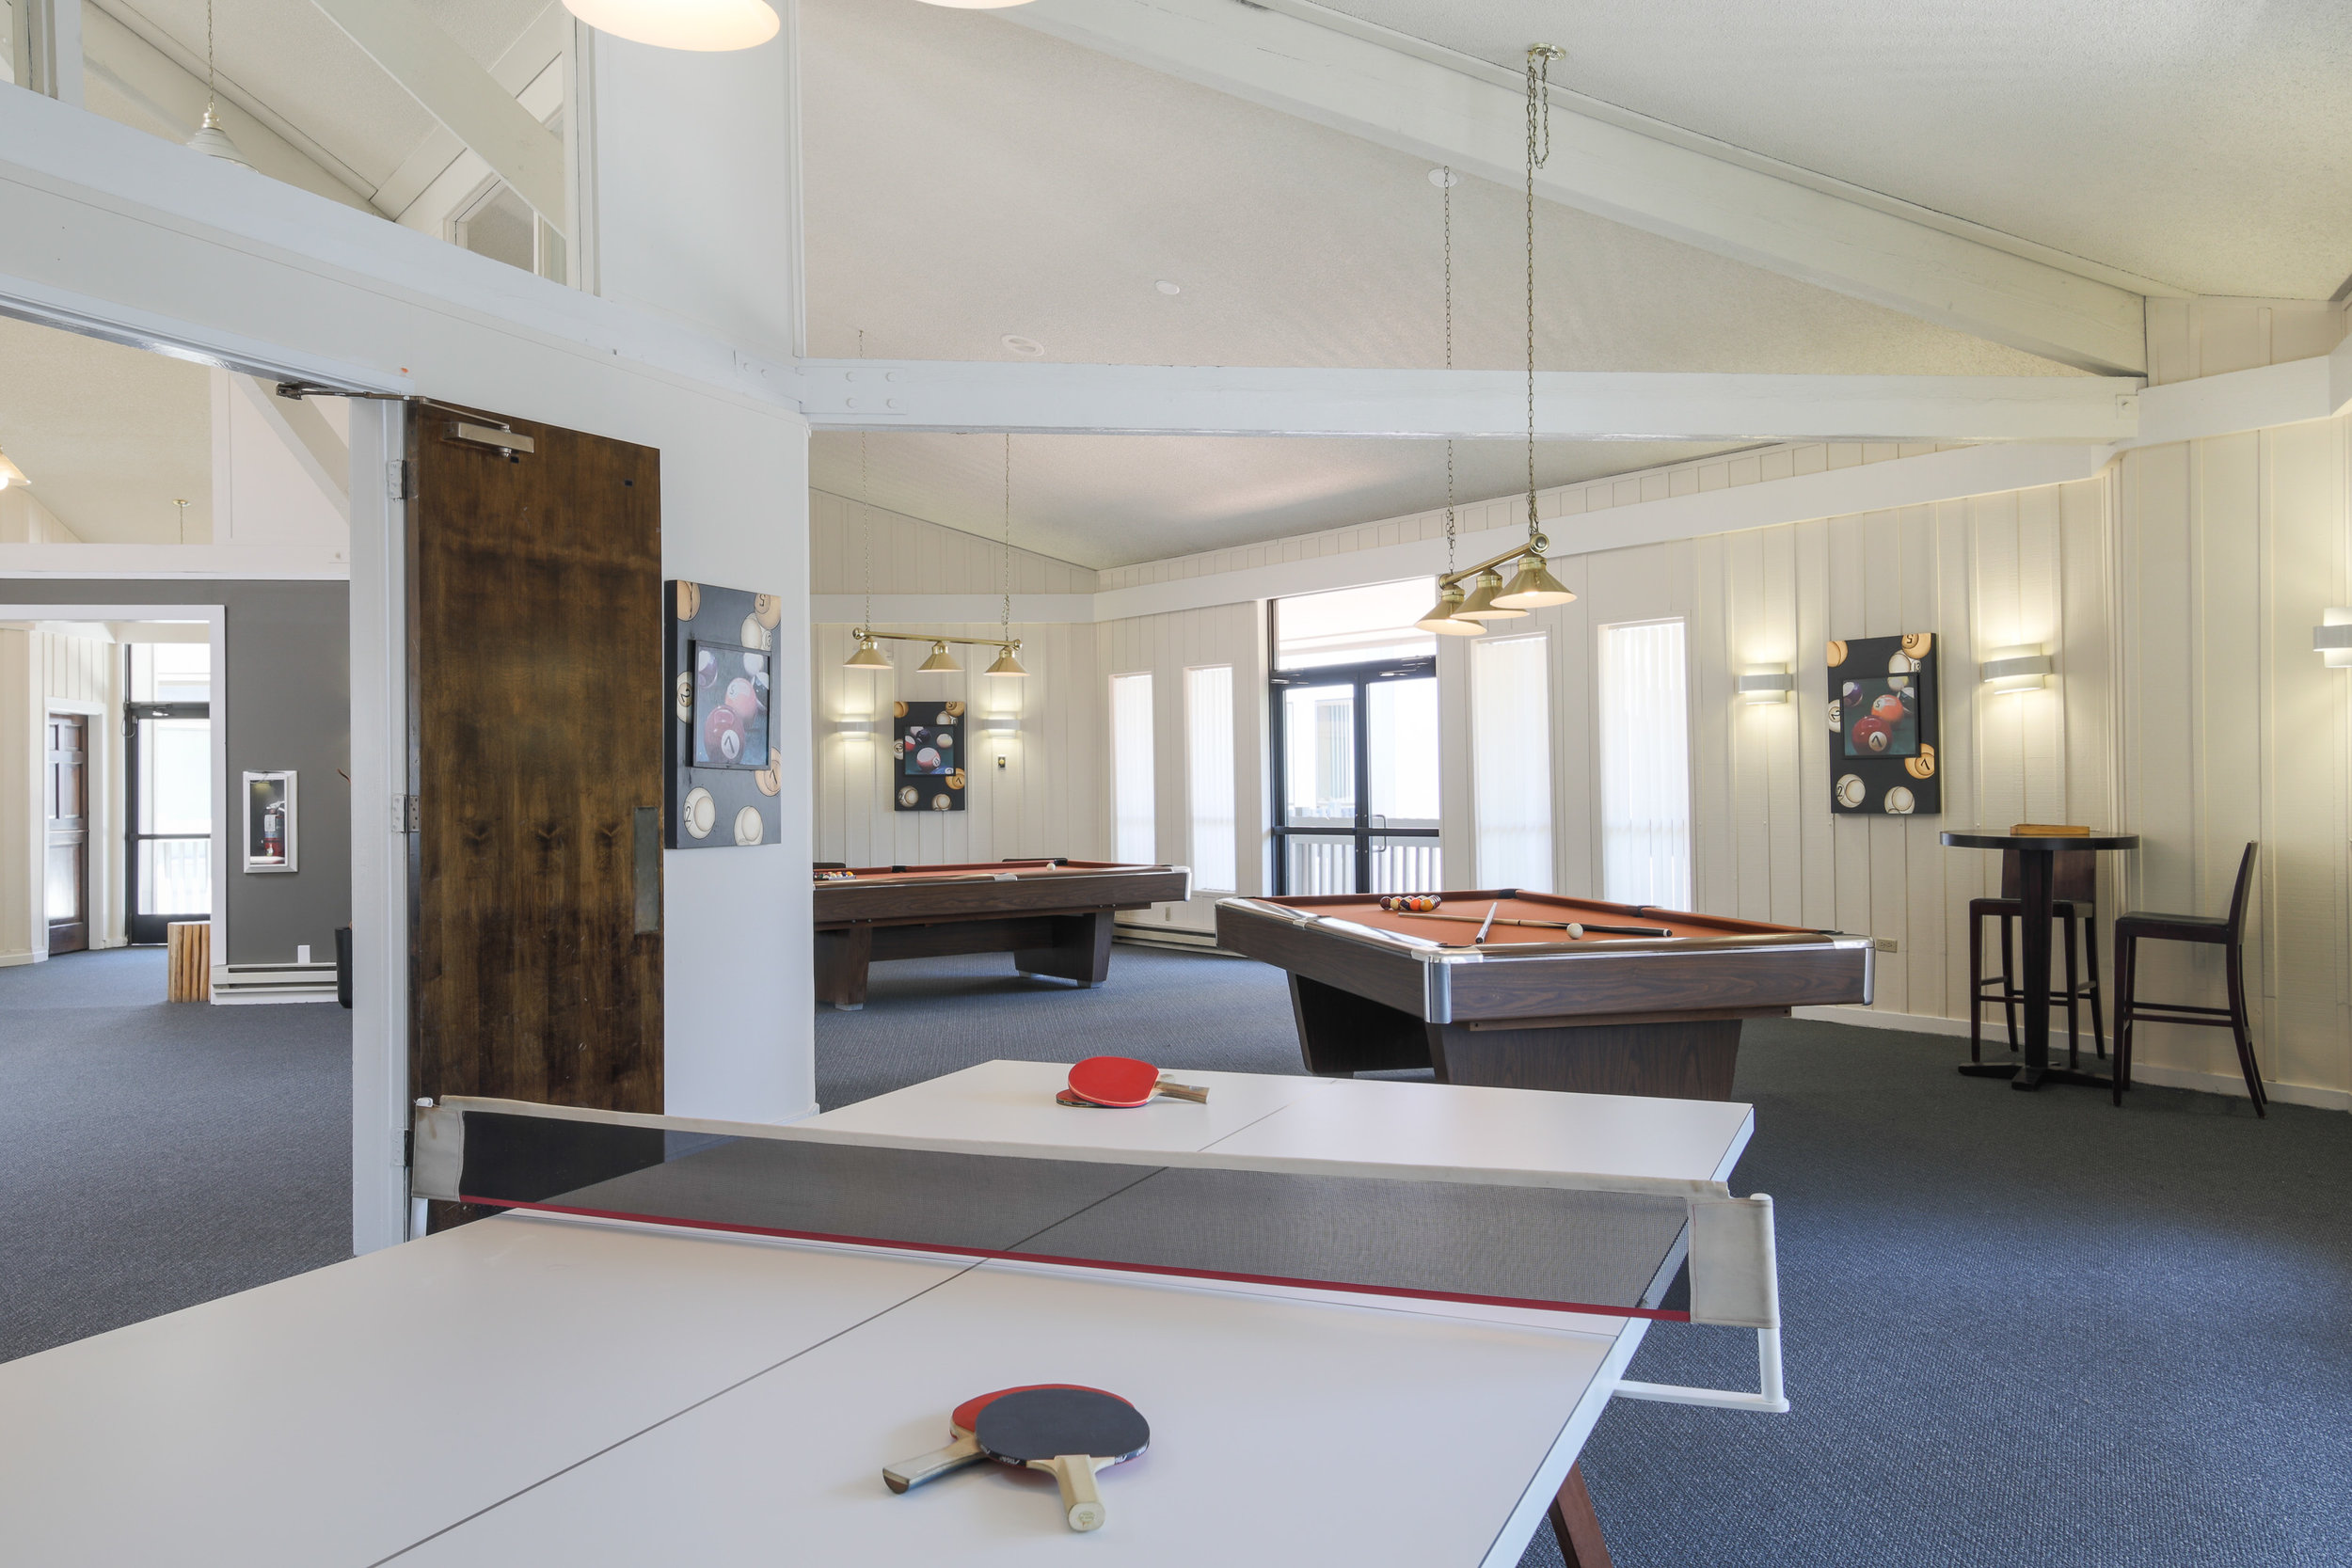 Family friendly clubhouse, with game rooms